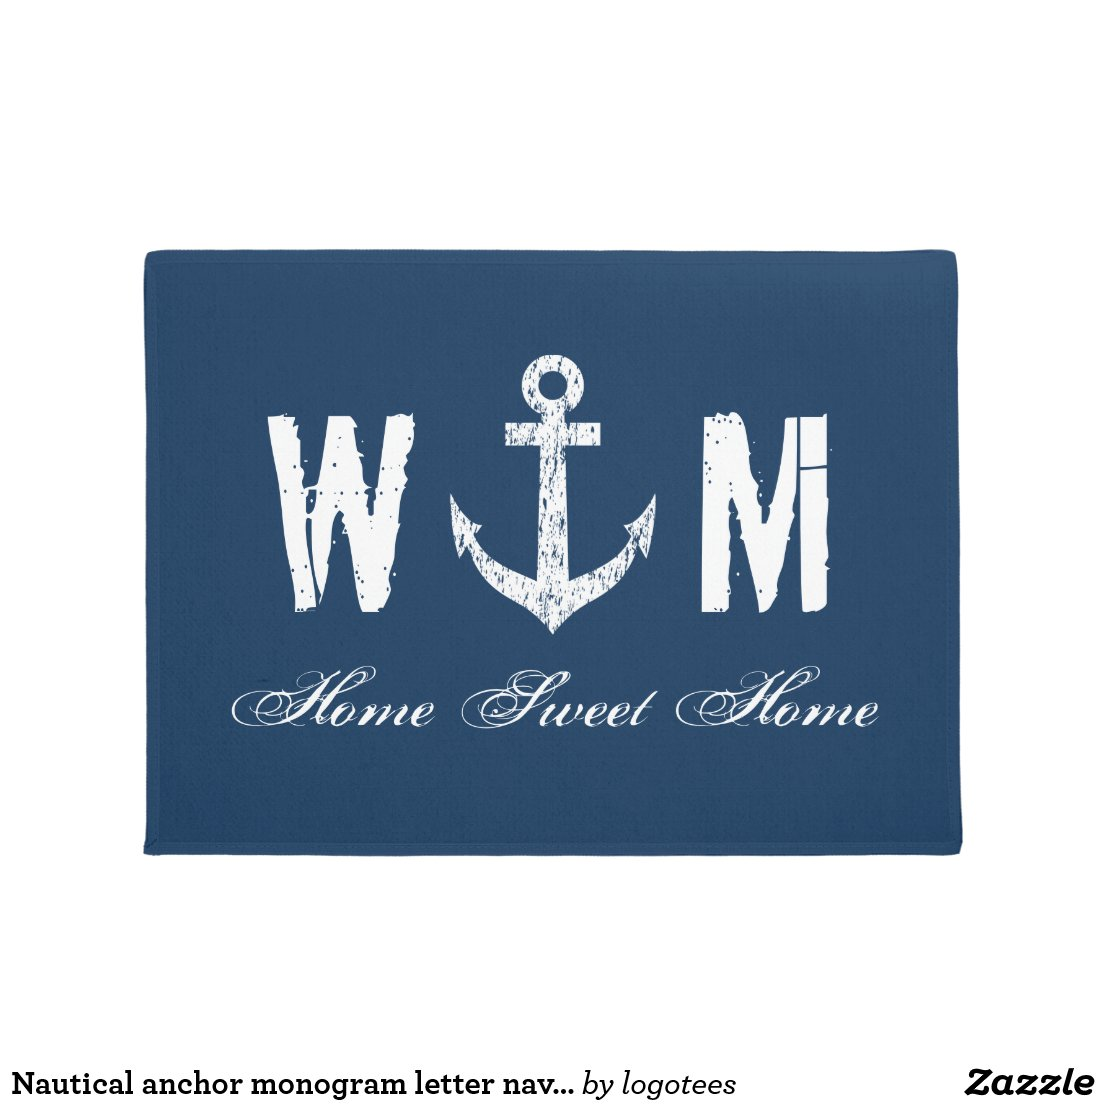 Nautical anchor monogram letter navy blue door mat